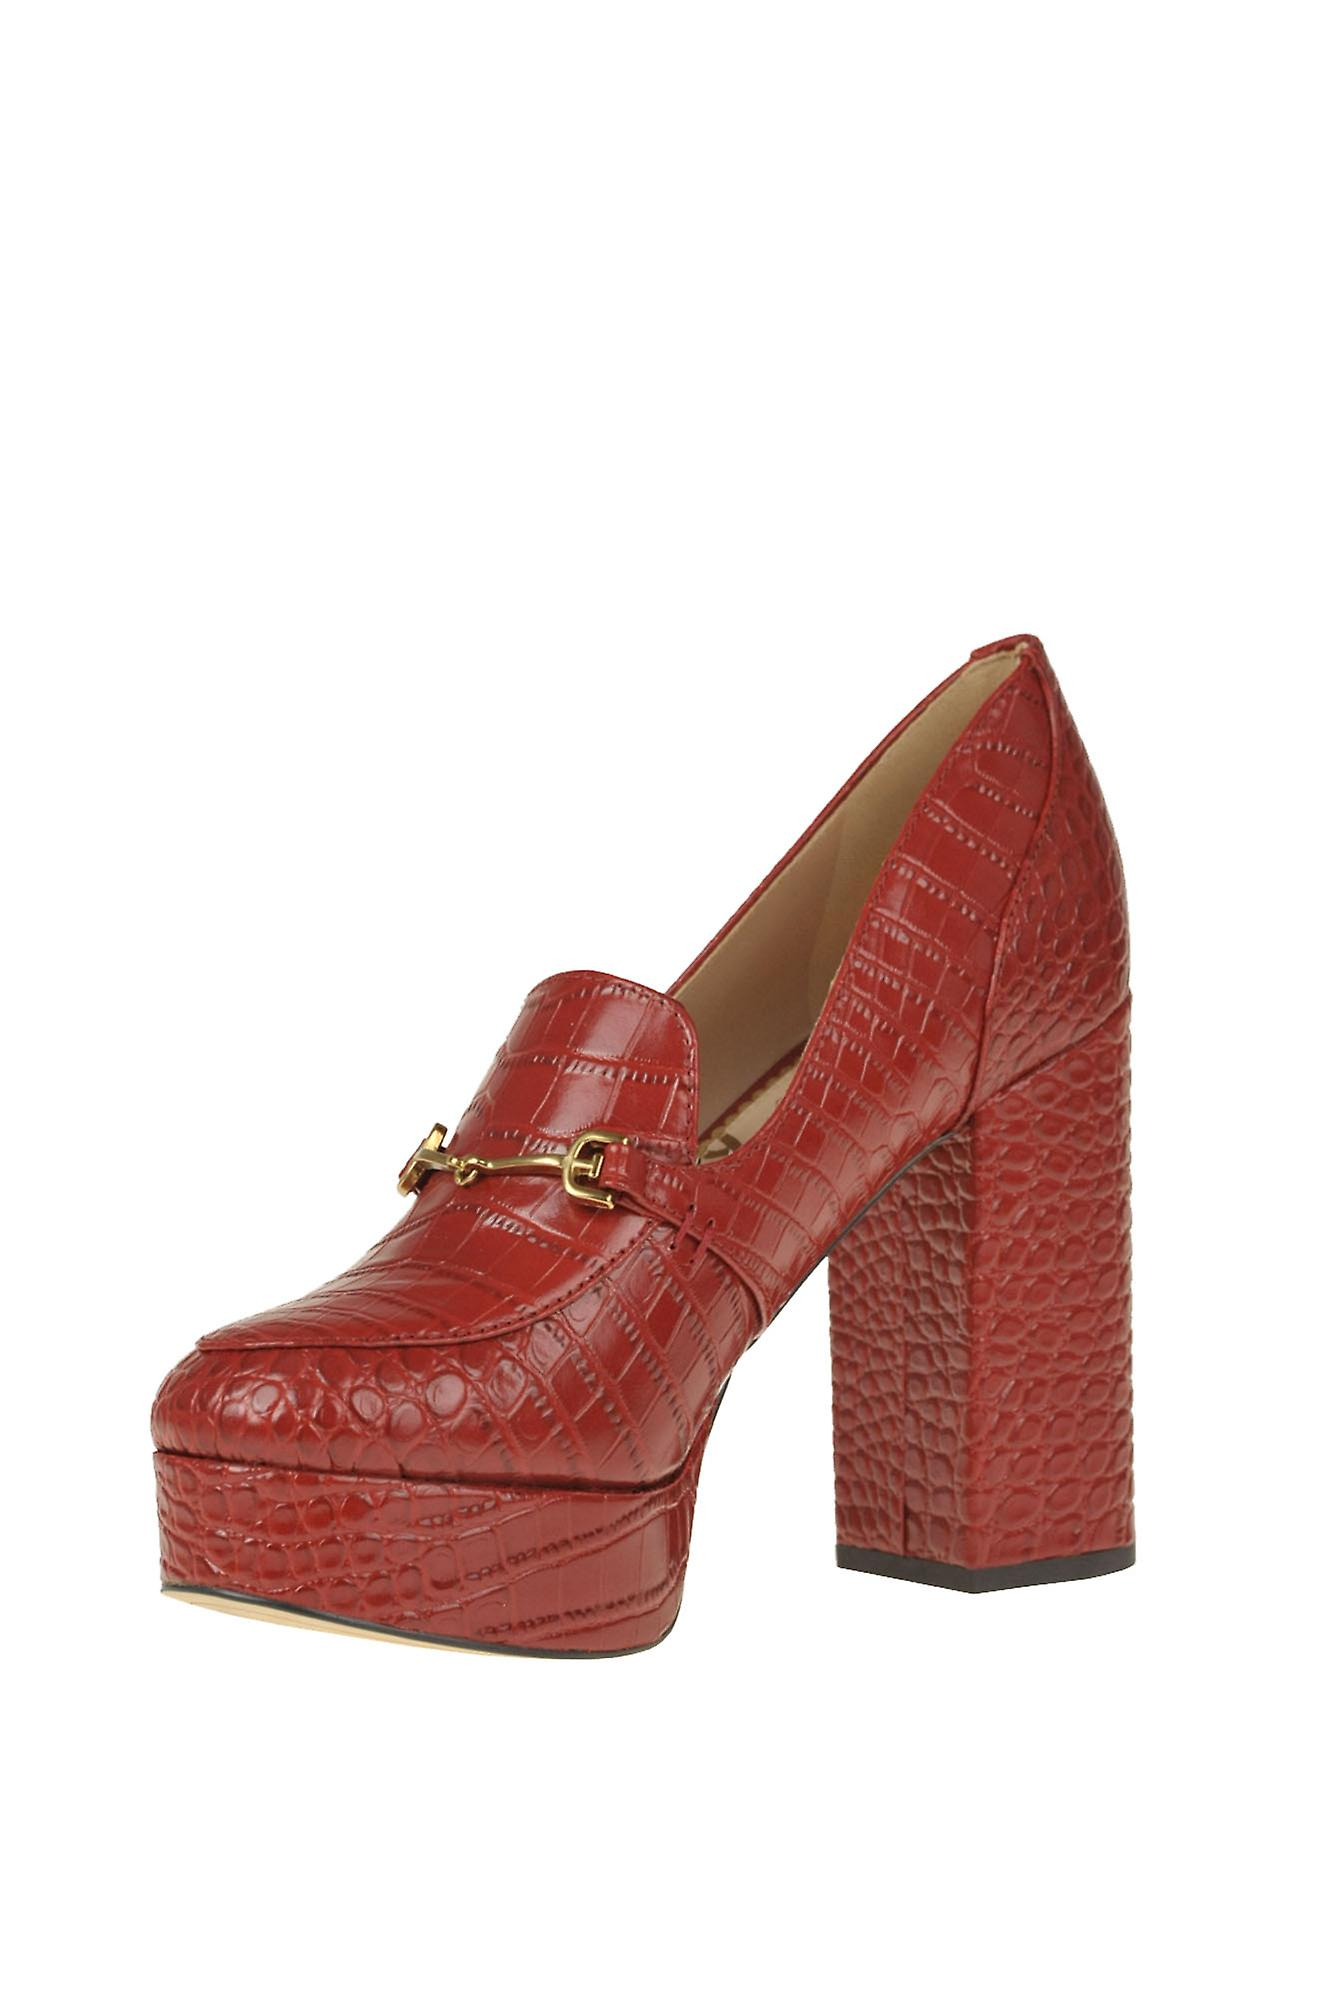 Sam Edelman Ezgl071008 Femmes-apos;s Red Leather Pumps